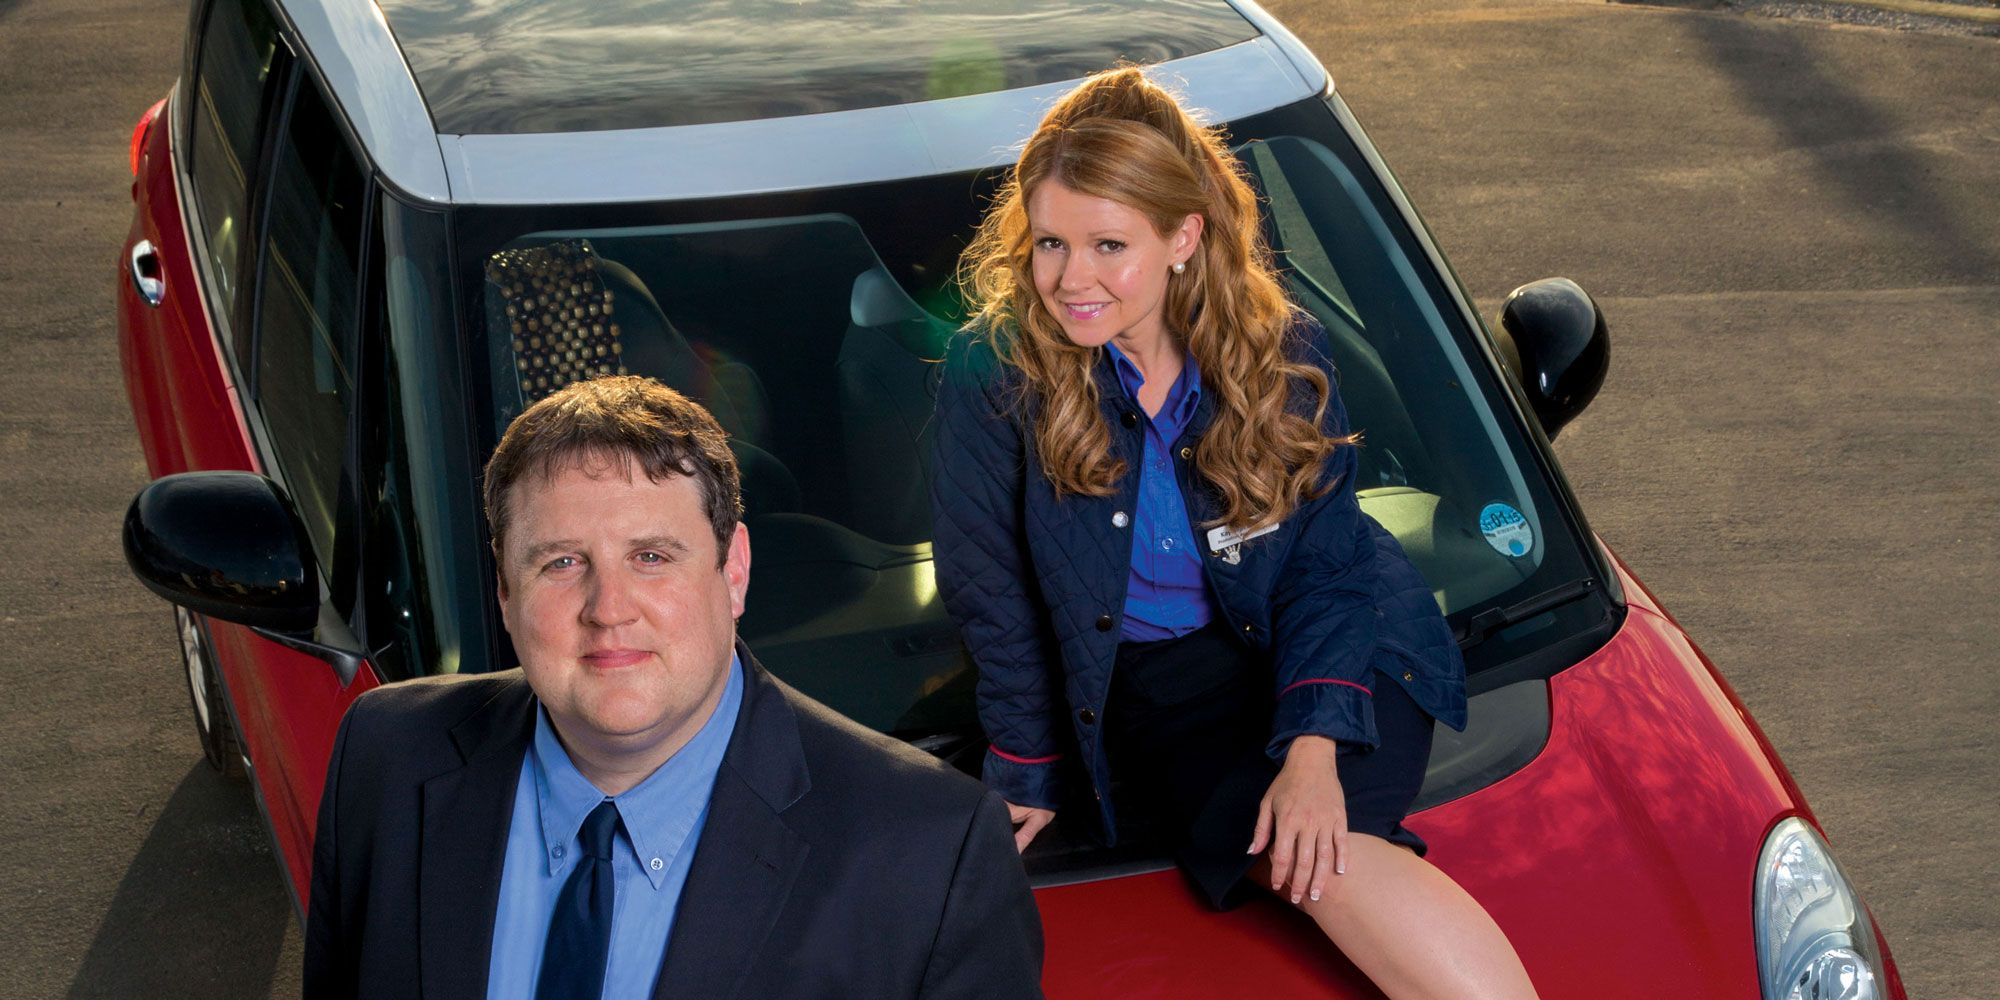 Peter Kay Car Share - Dirty back window blunder